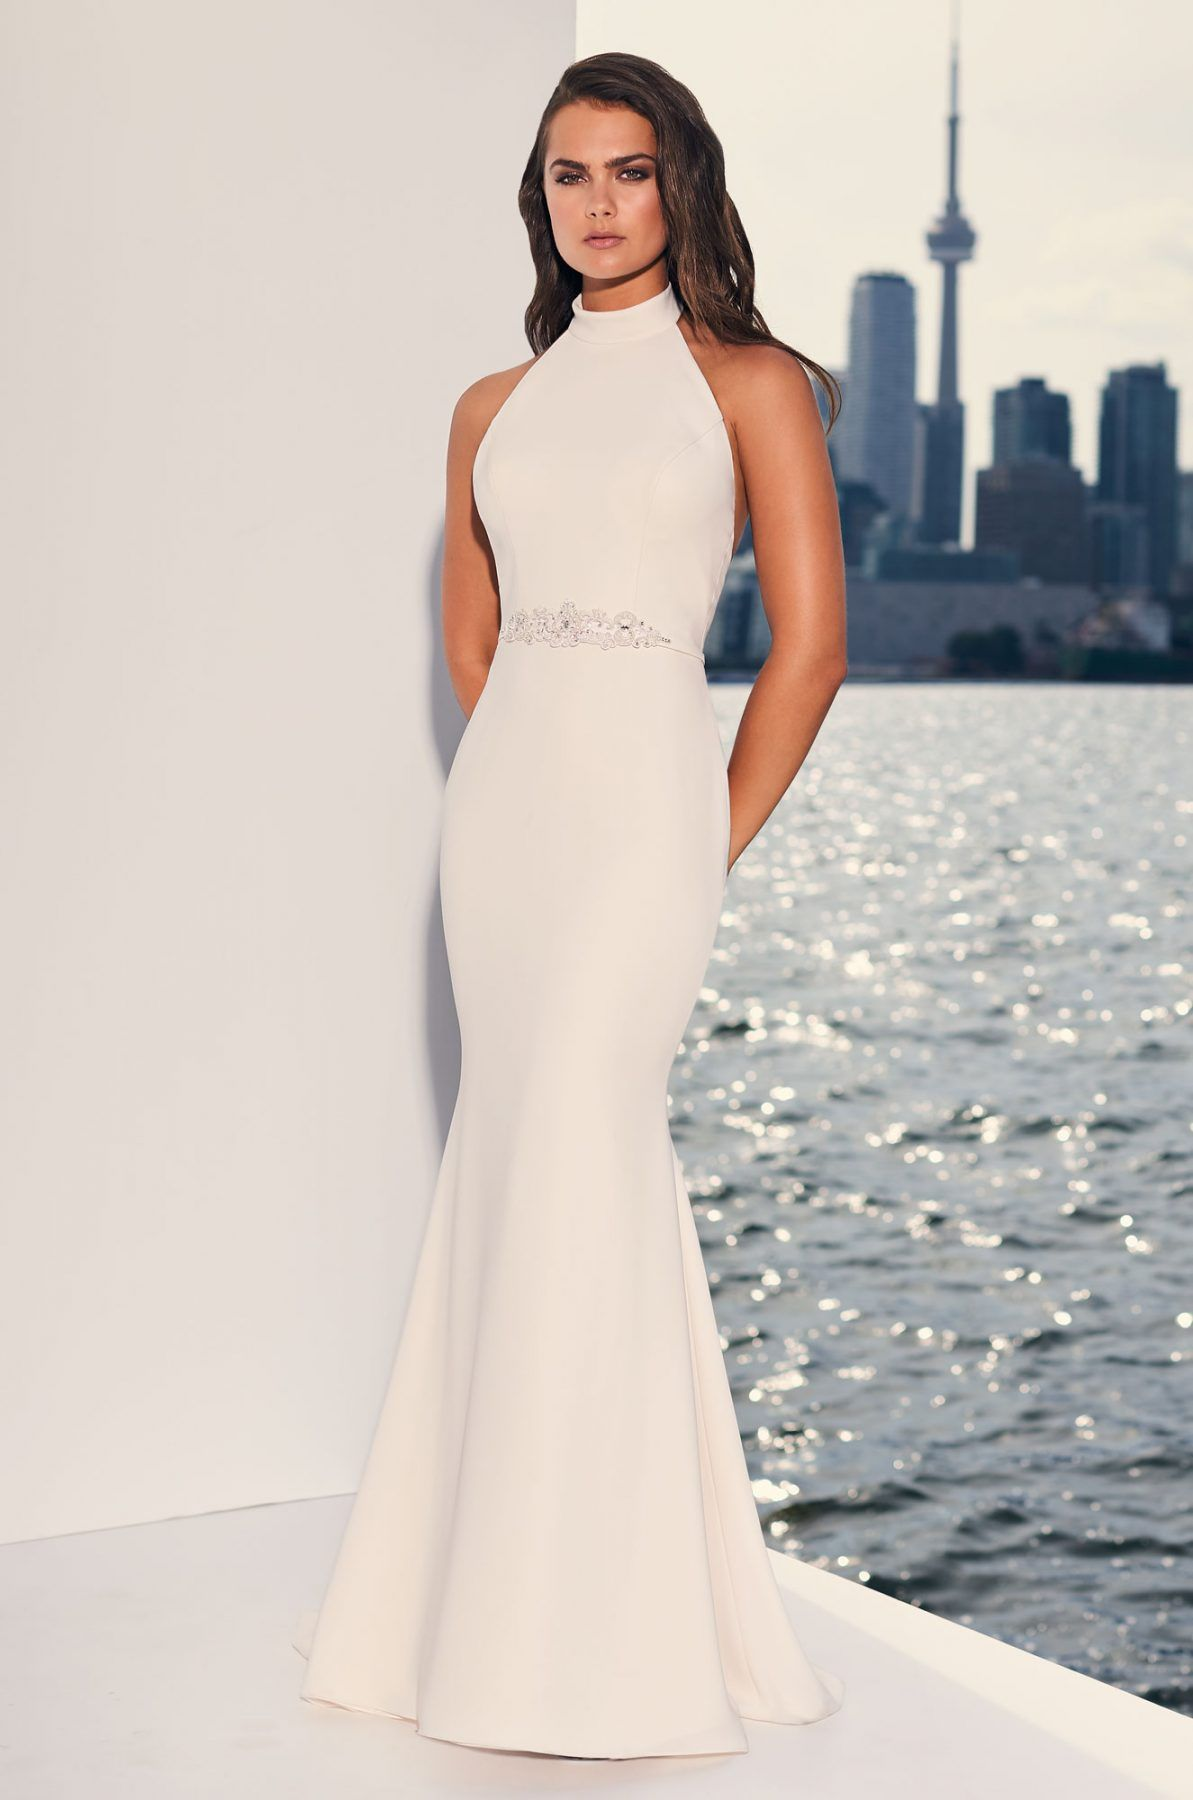 Halter Top Crepe Open Back Fit And Flare Wedding Dress Kleinfeld Bridal Halter Top Wedding Dress Fit And Flare Wedding Dress Ball Gown Wedding Dress